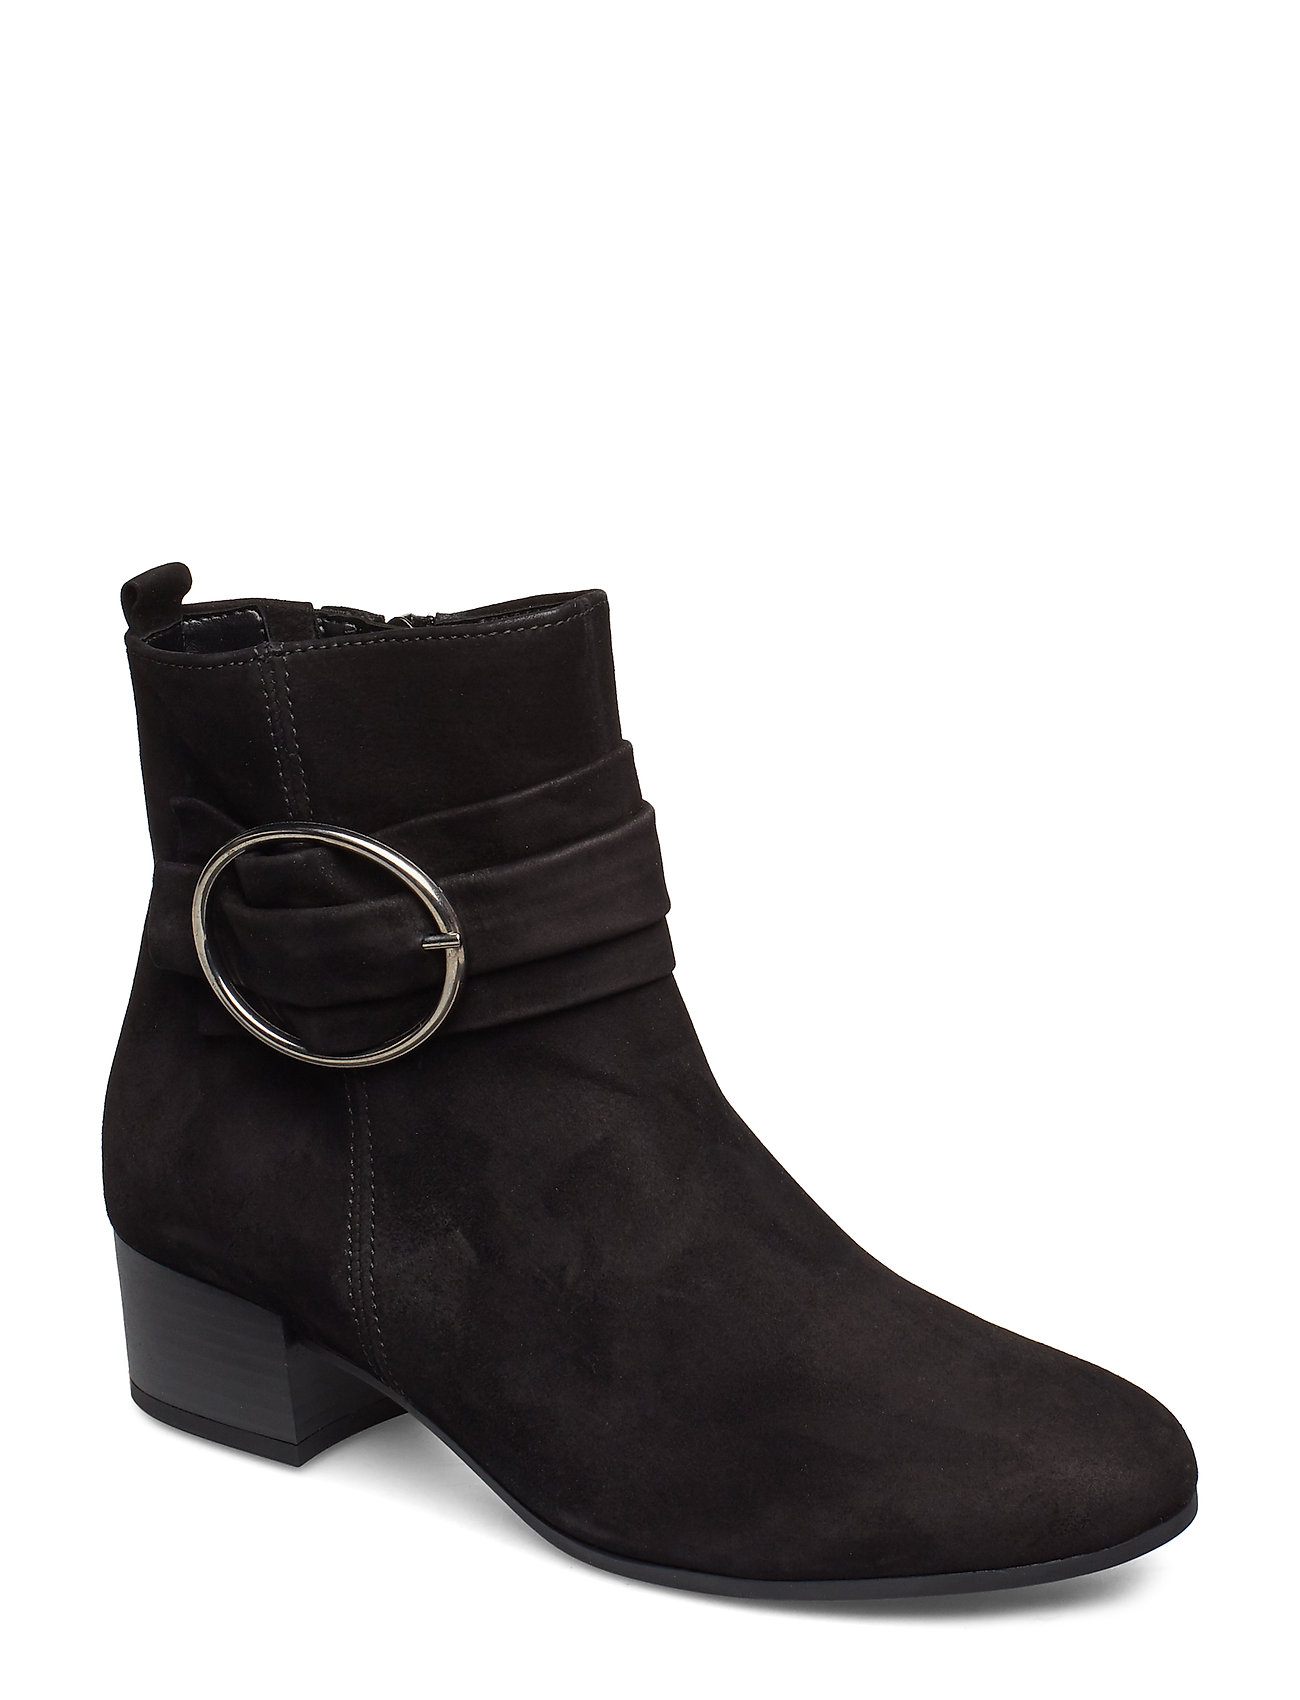 Image of Ankle Boots Shoes Boots Ankle Boots Ankle Boots With Heel Sort Gabor (3211642115)